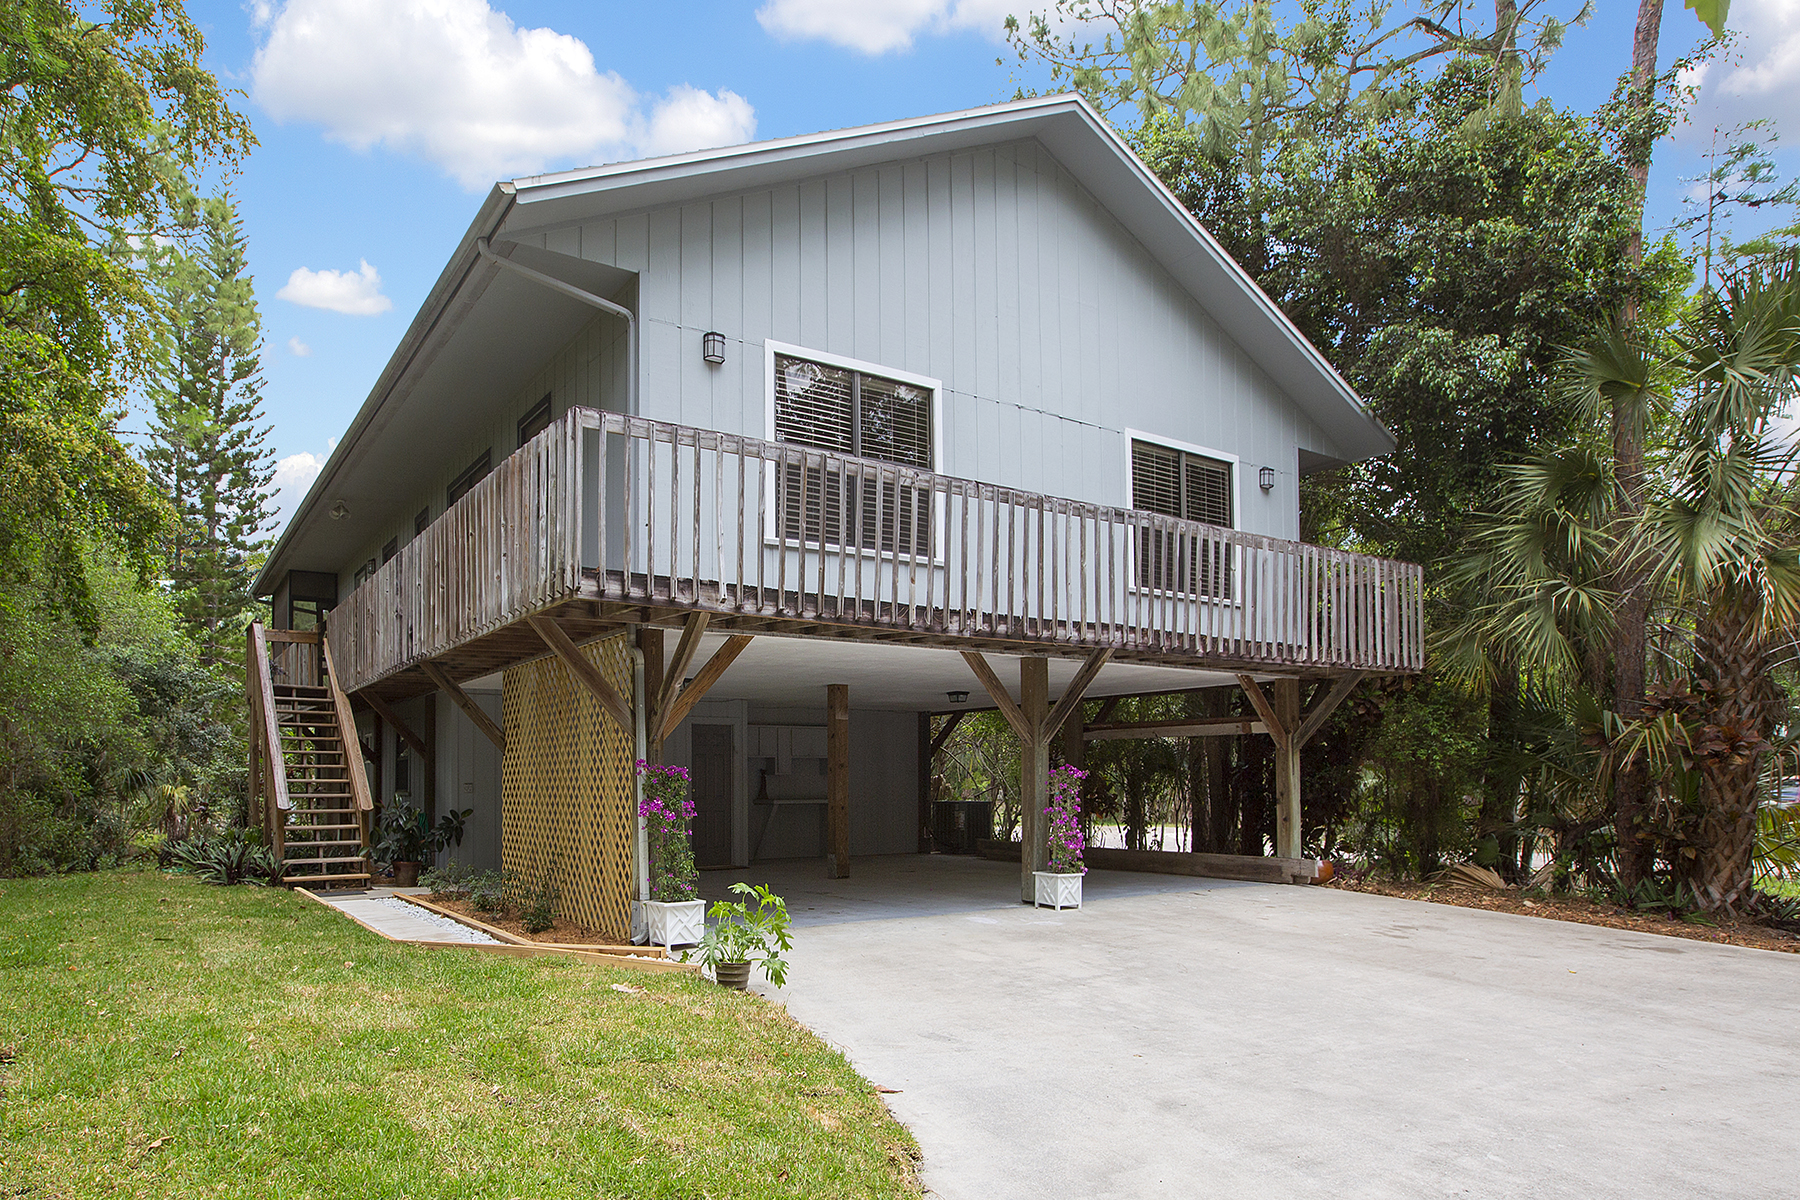 Single Family Home for Sale at Naples 4971 Hickory Wood Dr Naples, Florida, 34119 United States